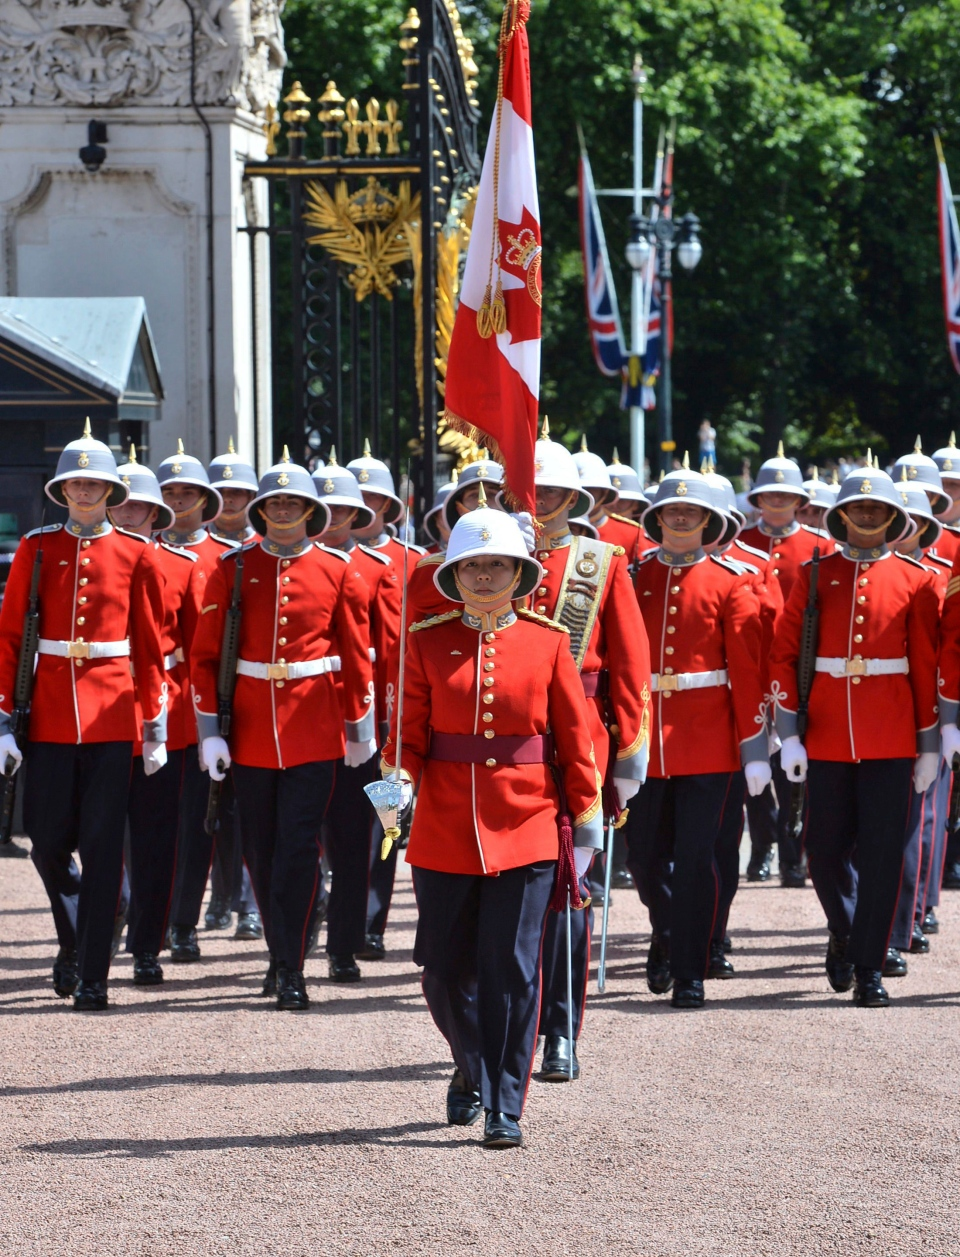 Couto and her unit, the 2nd Battalion, Princess Patricia's Canadian Light Infantry took part in the ceremony to coincide with the 150th anniversary of Canada. (John Stillwell/Pool via AP)